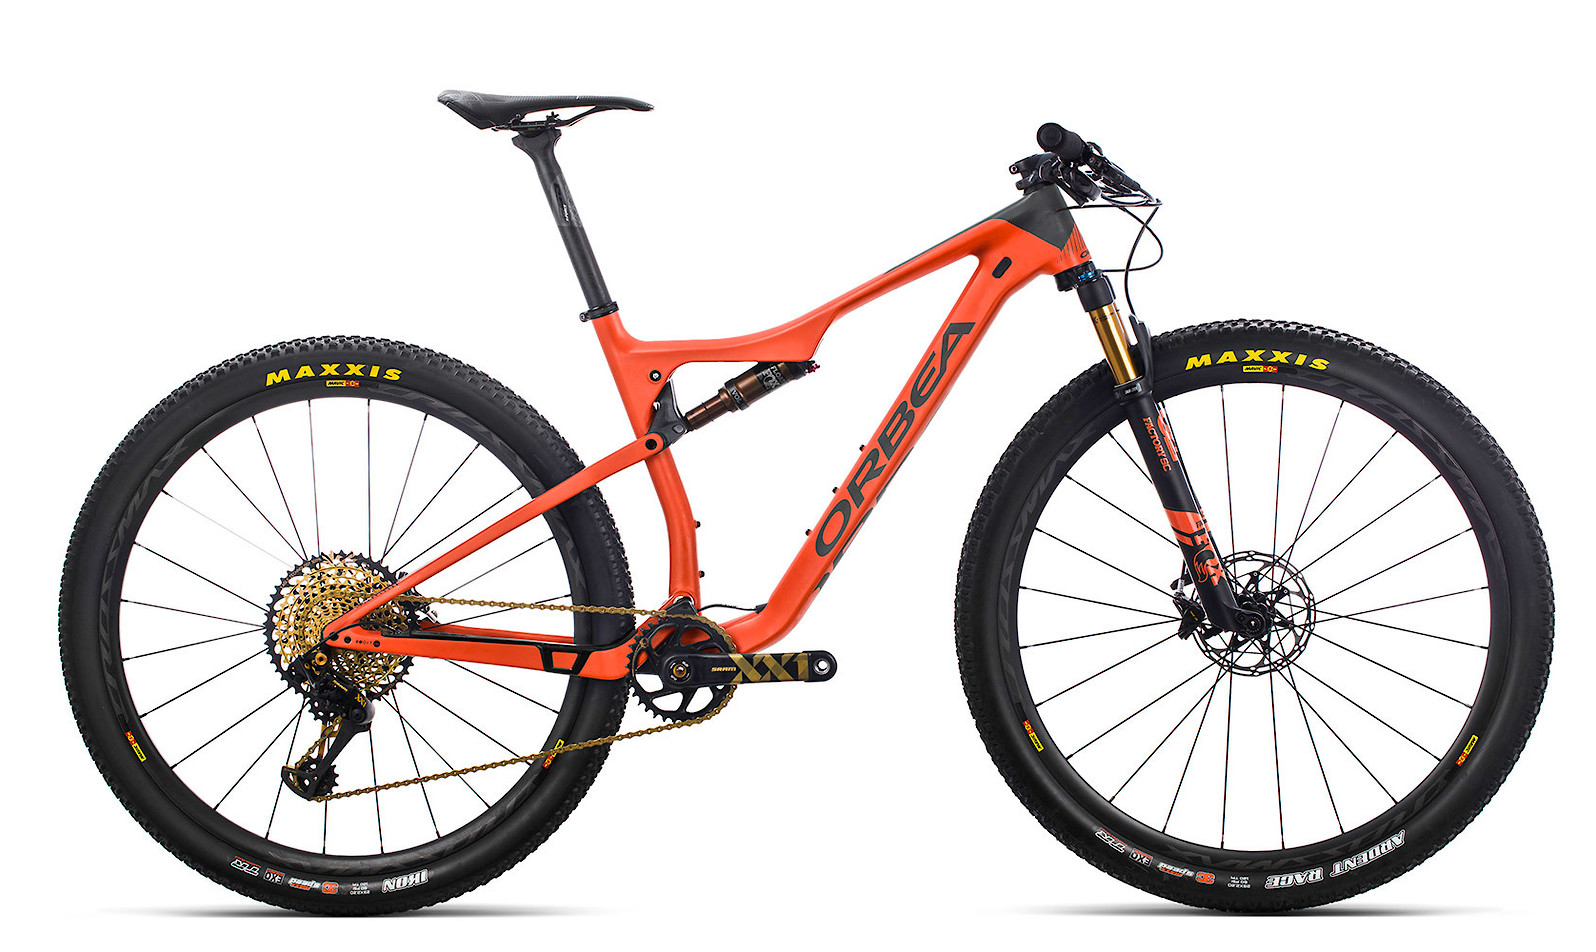 2019 Orbea Oiz M-LTD Bike